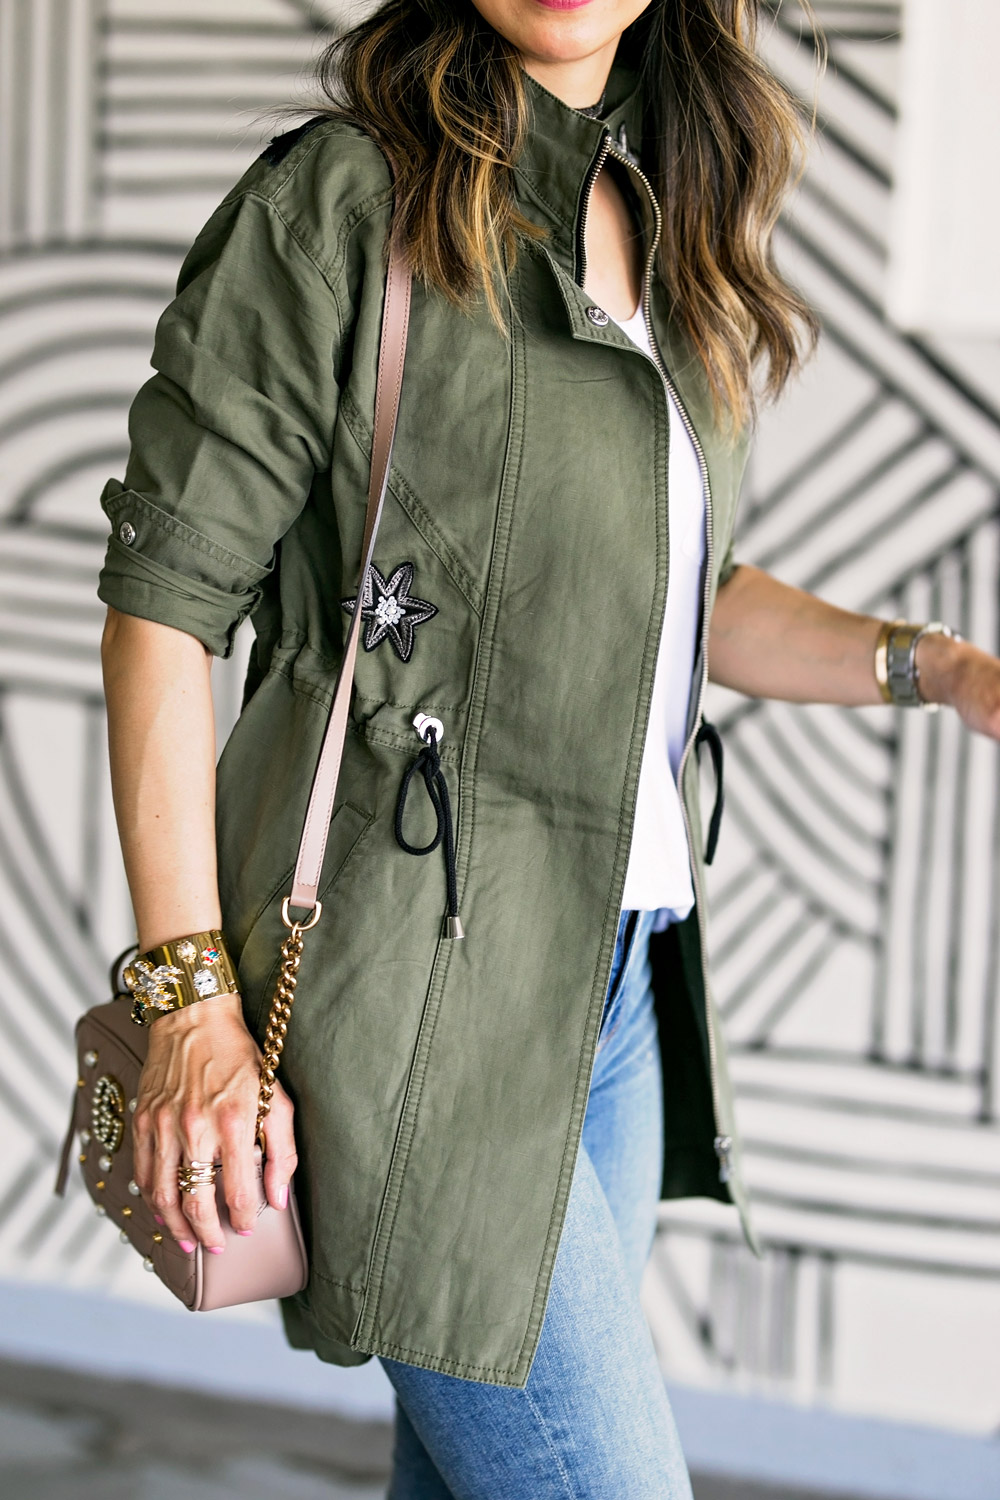 cabi hanson anorak embellished army green jacket secret garden cuff gucci marmont pearl camera bag